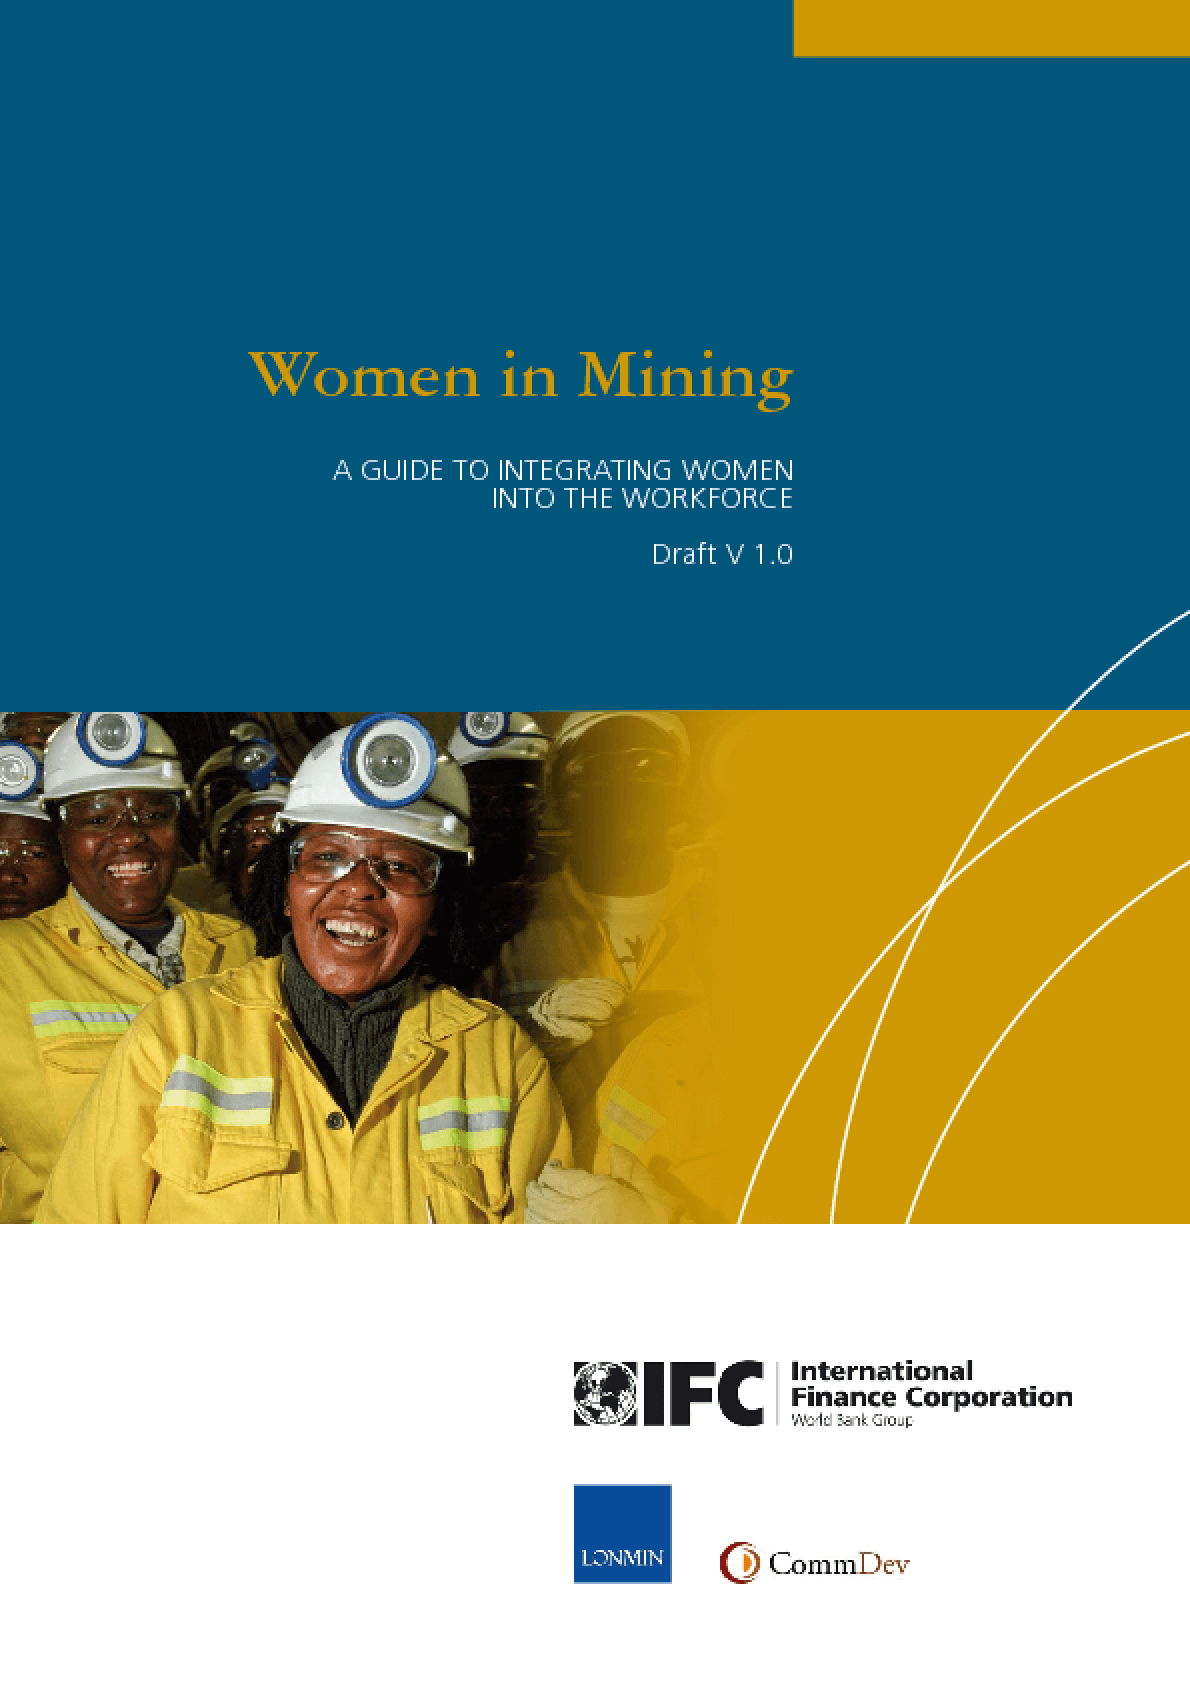 Women In Mining Manual: A Guide to Integrating Women into the Workforce